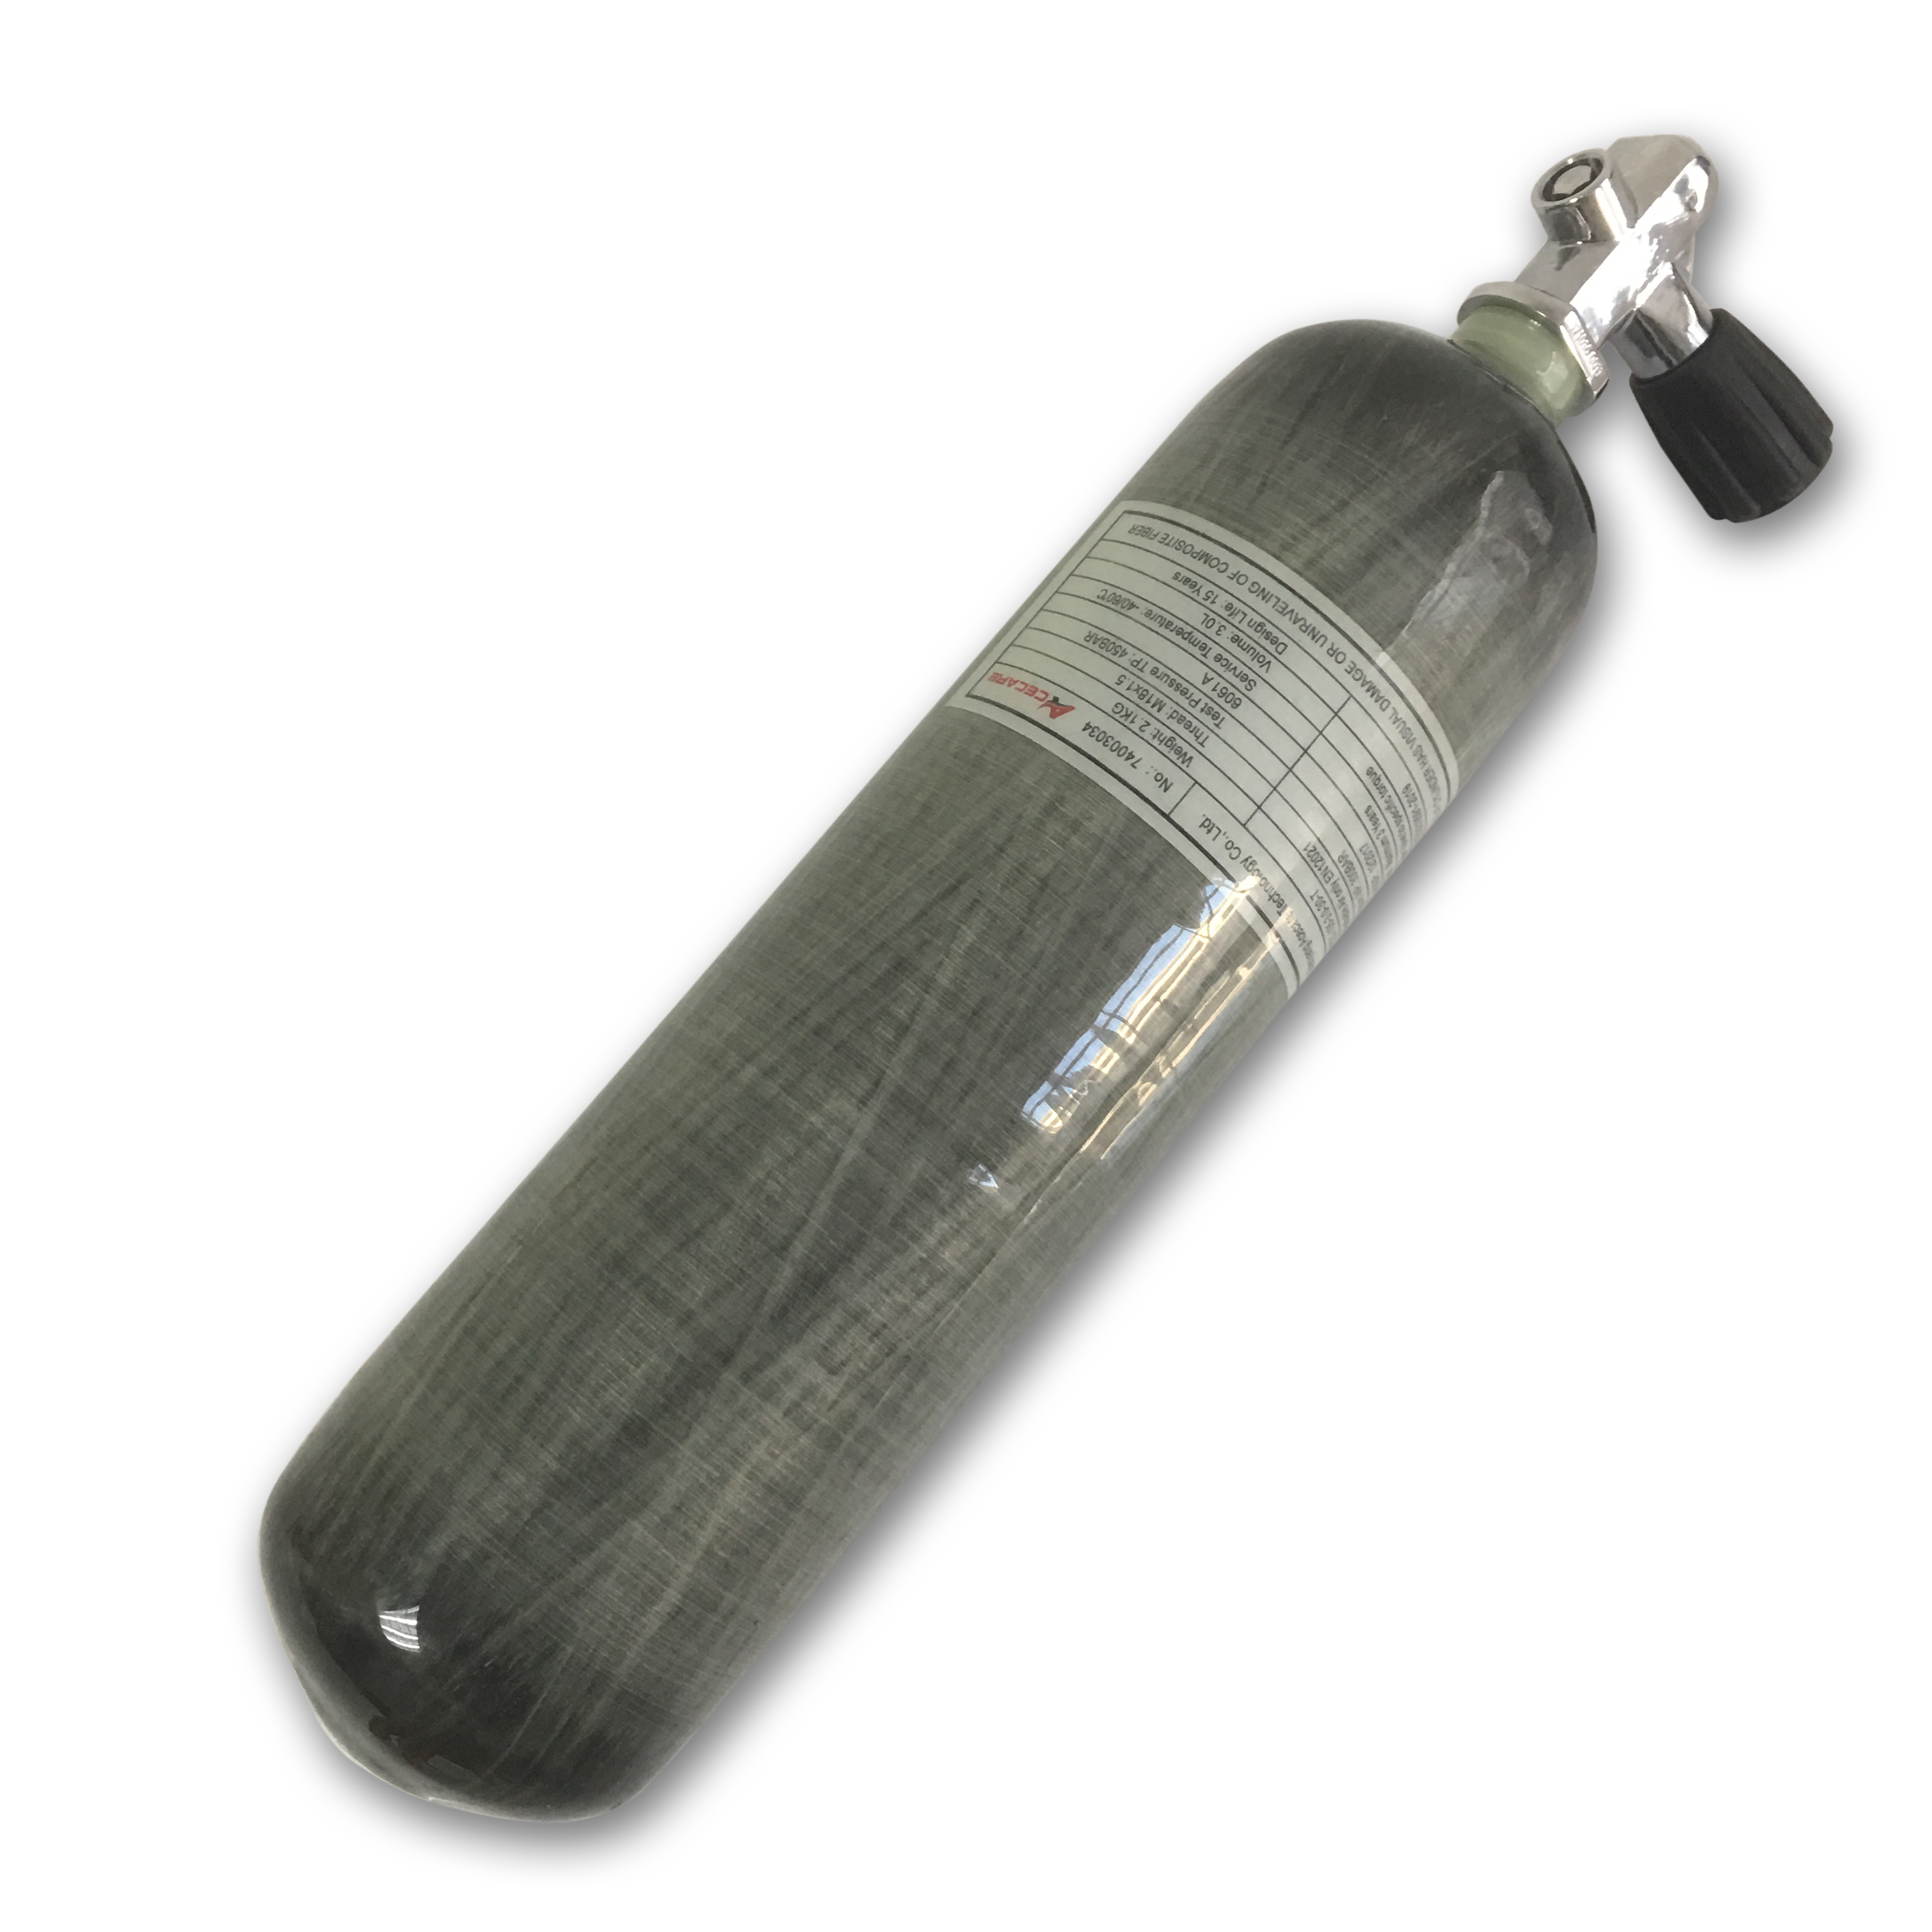 AC10351 3L Carbon Fiber Cylinder With PCP Airforce Condor For Underwater Hunting Gun/Pneumatic Gun For Shooting/Pressure Rifles